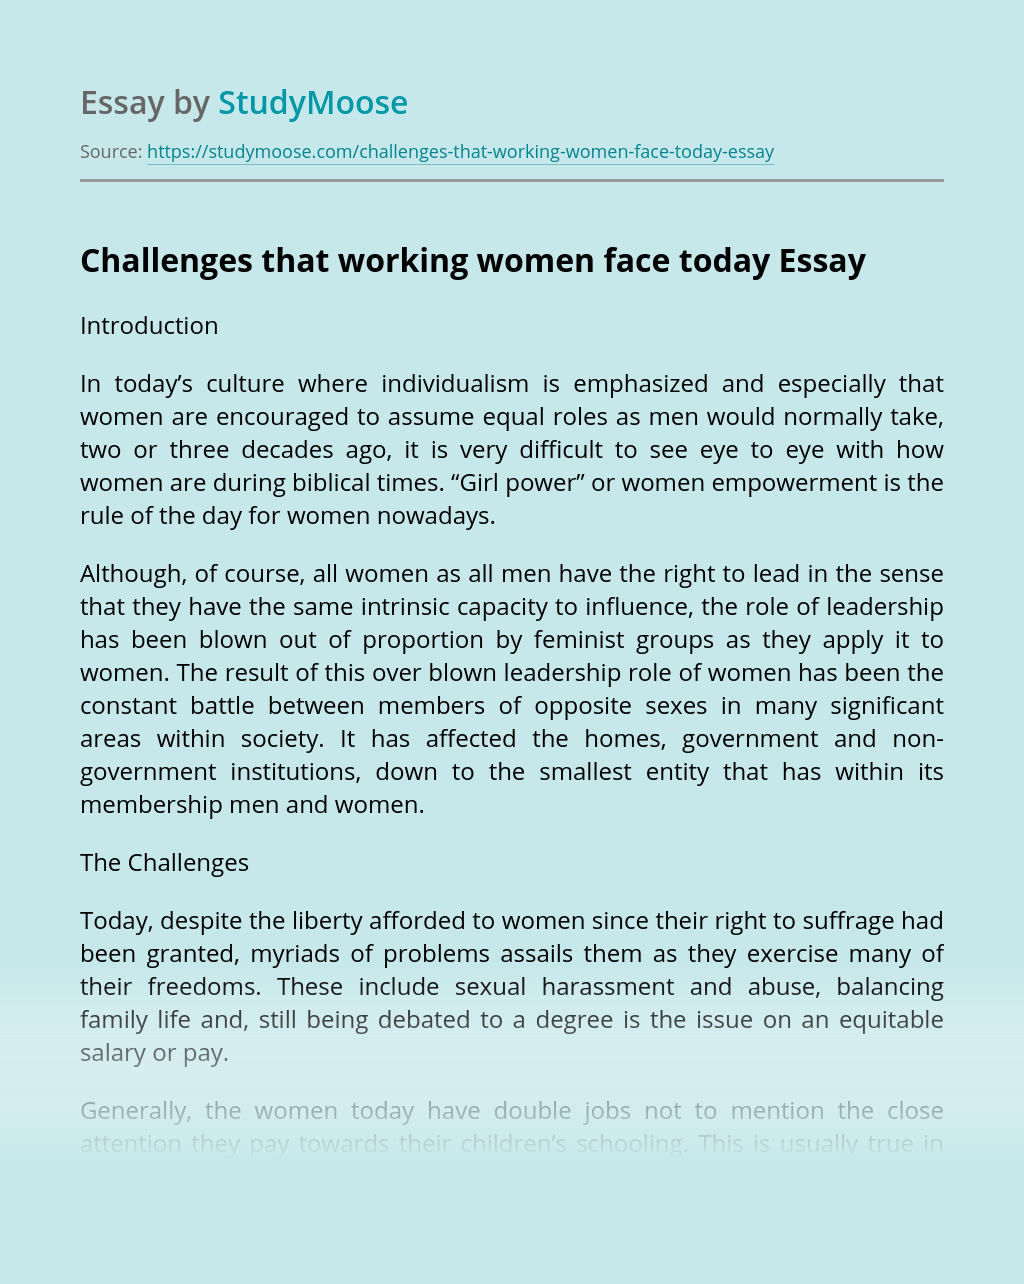 Challenges that working women face today